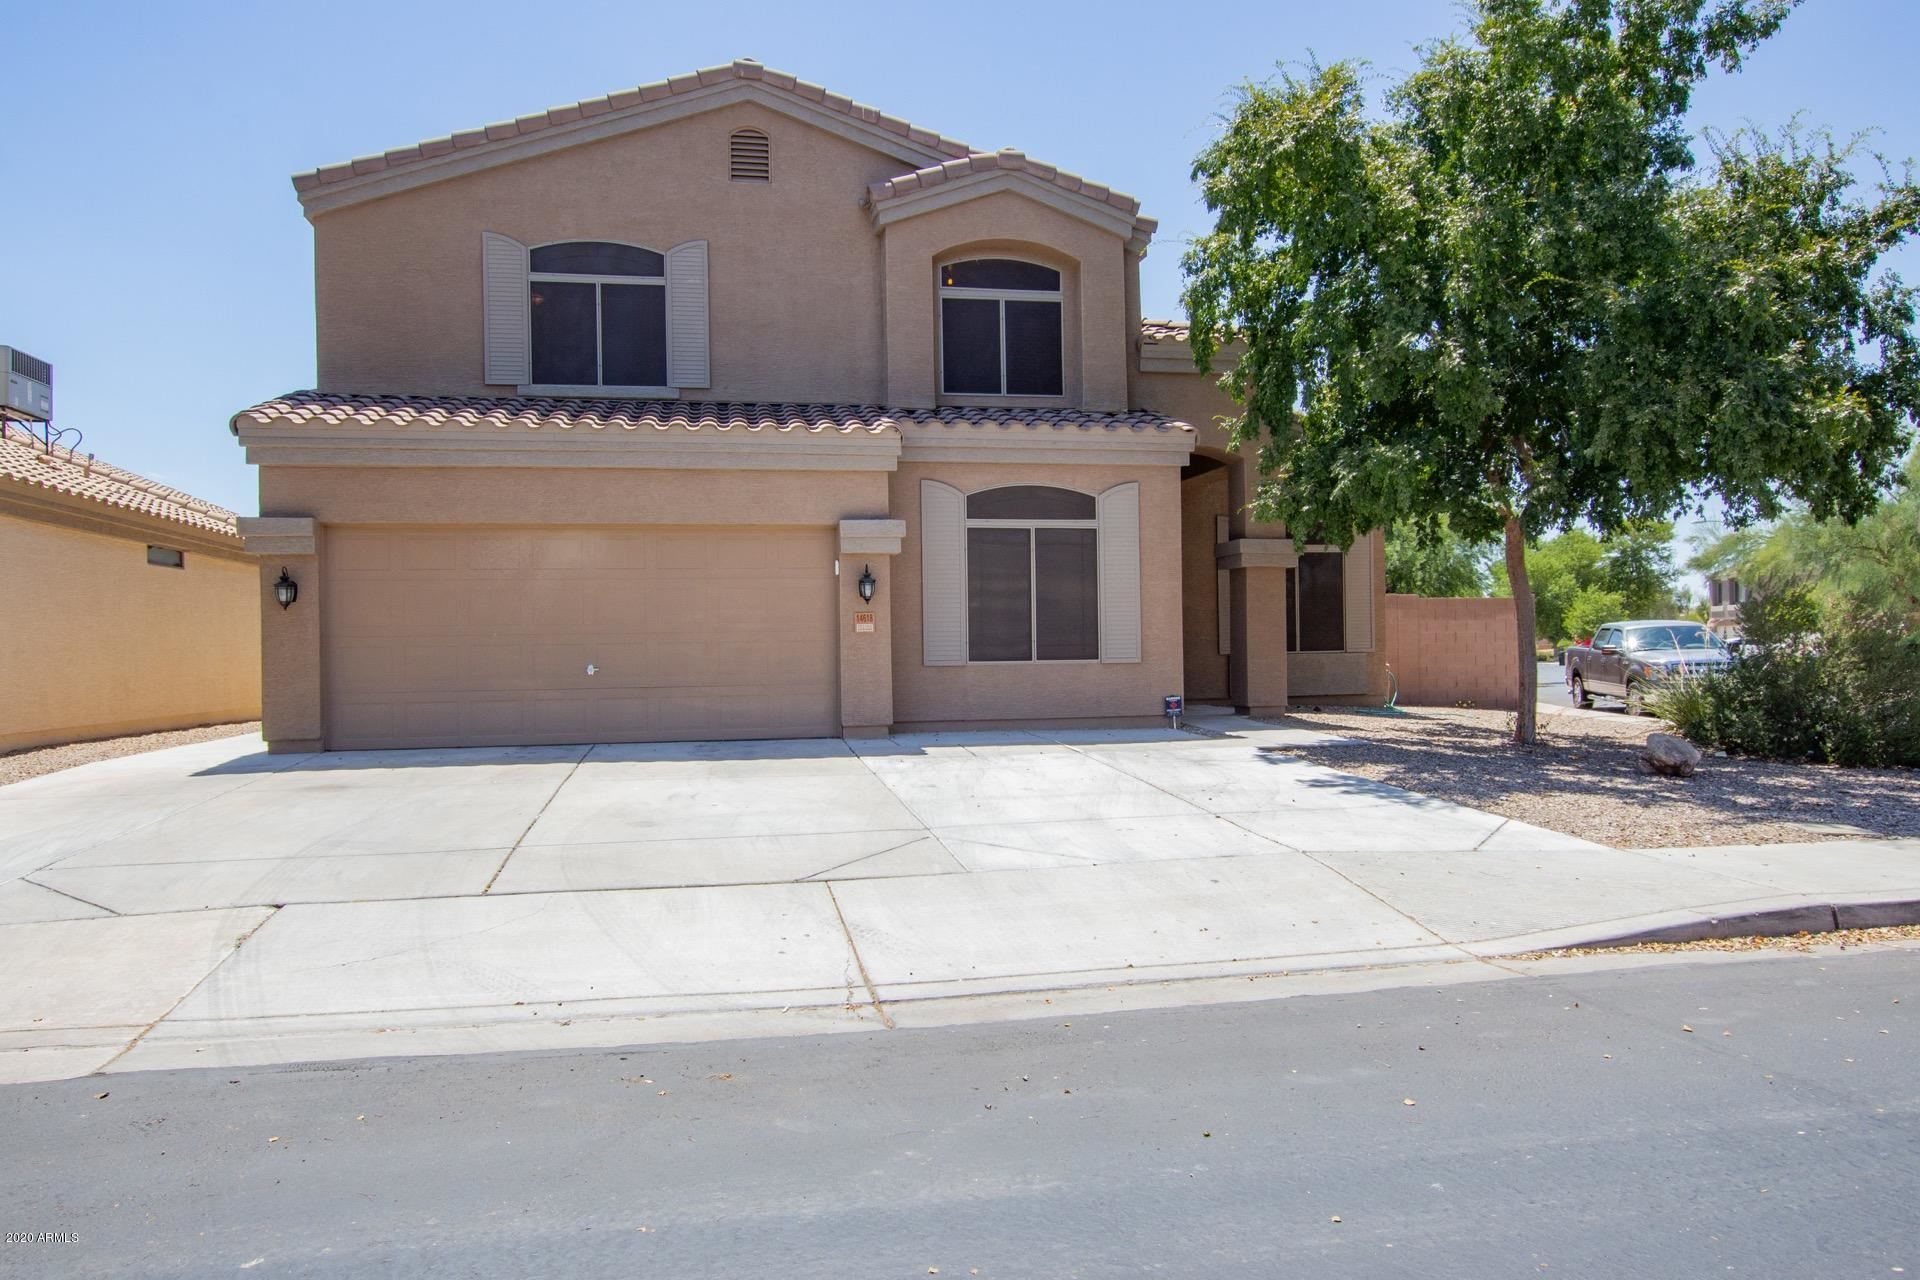 14618 N 125TH Lane, El Mirage, AZ 85335 - #: 6100604